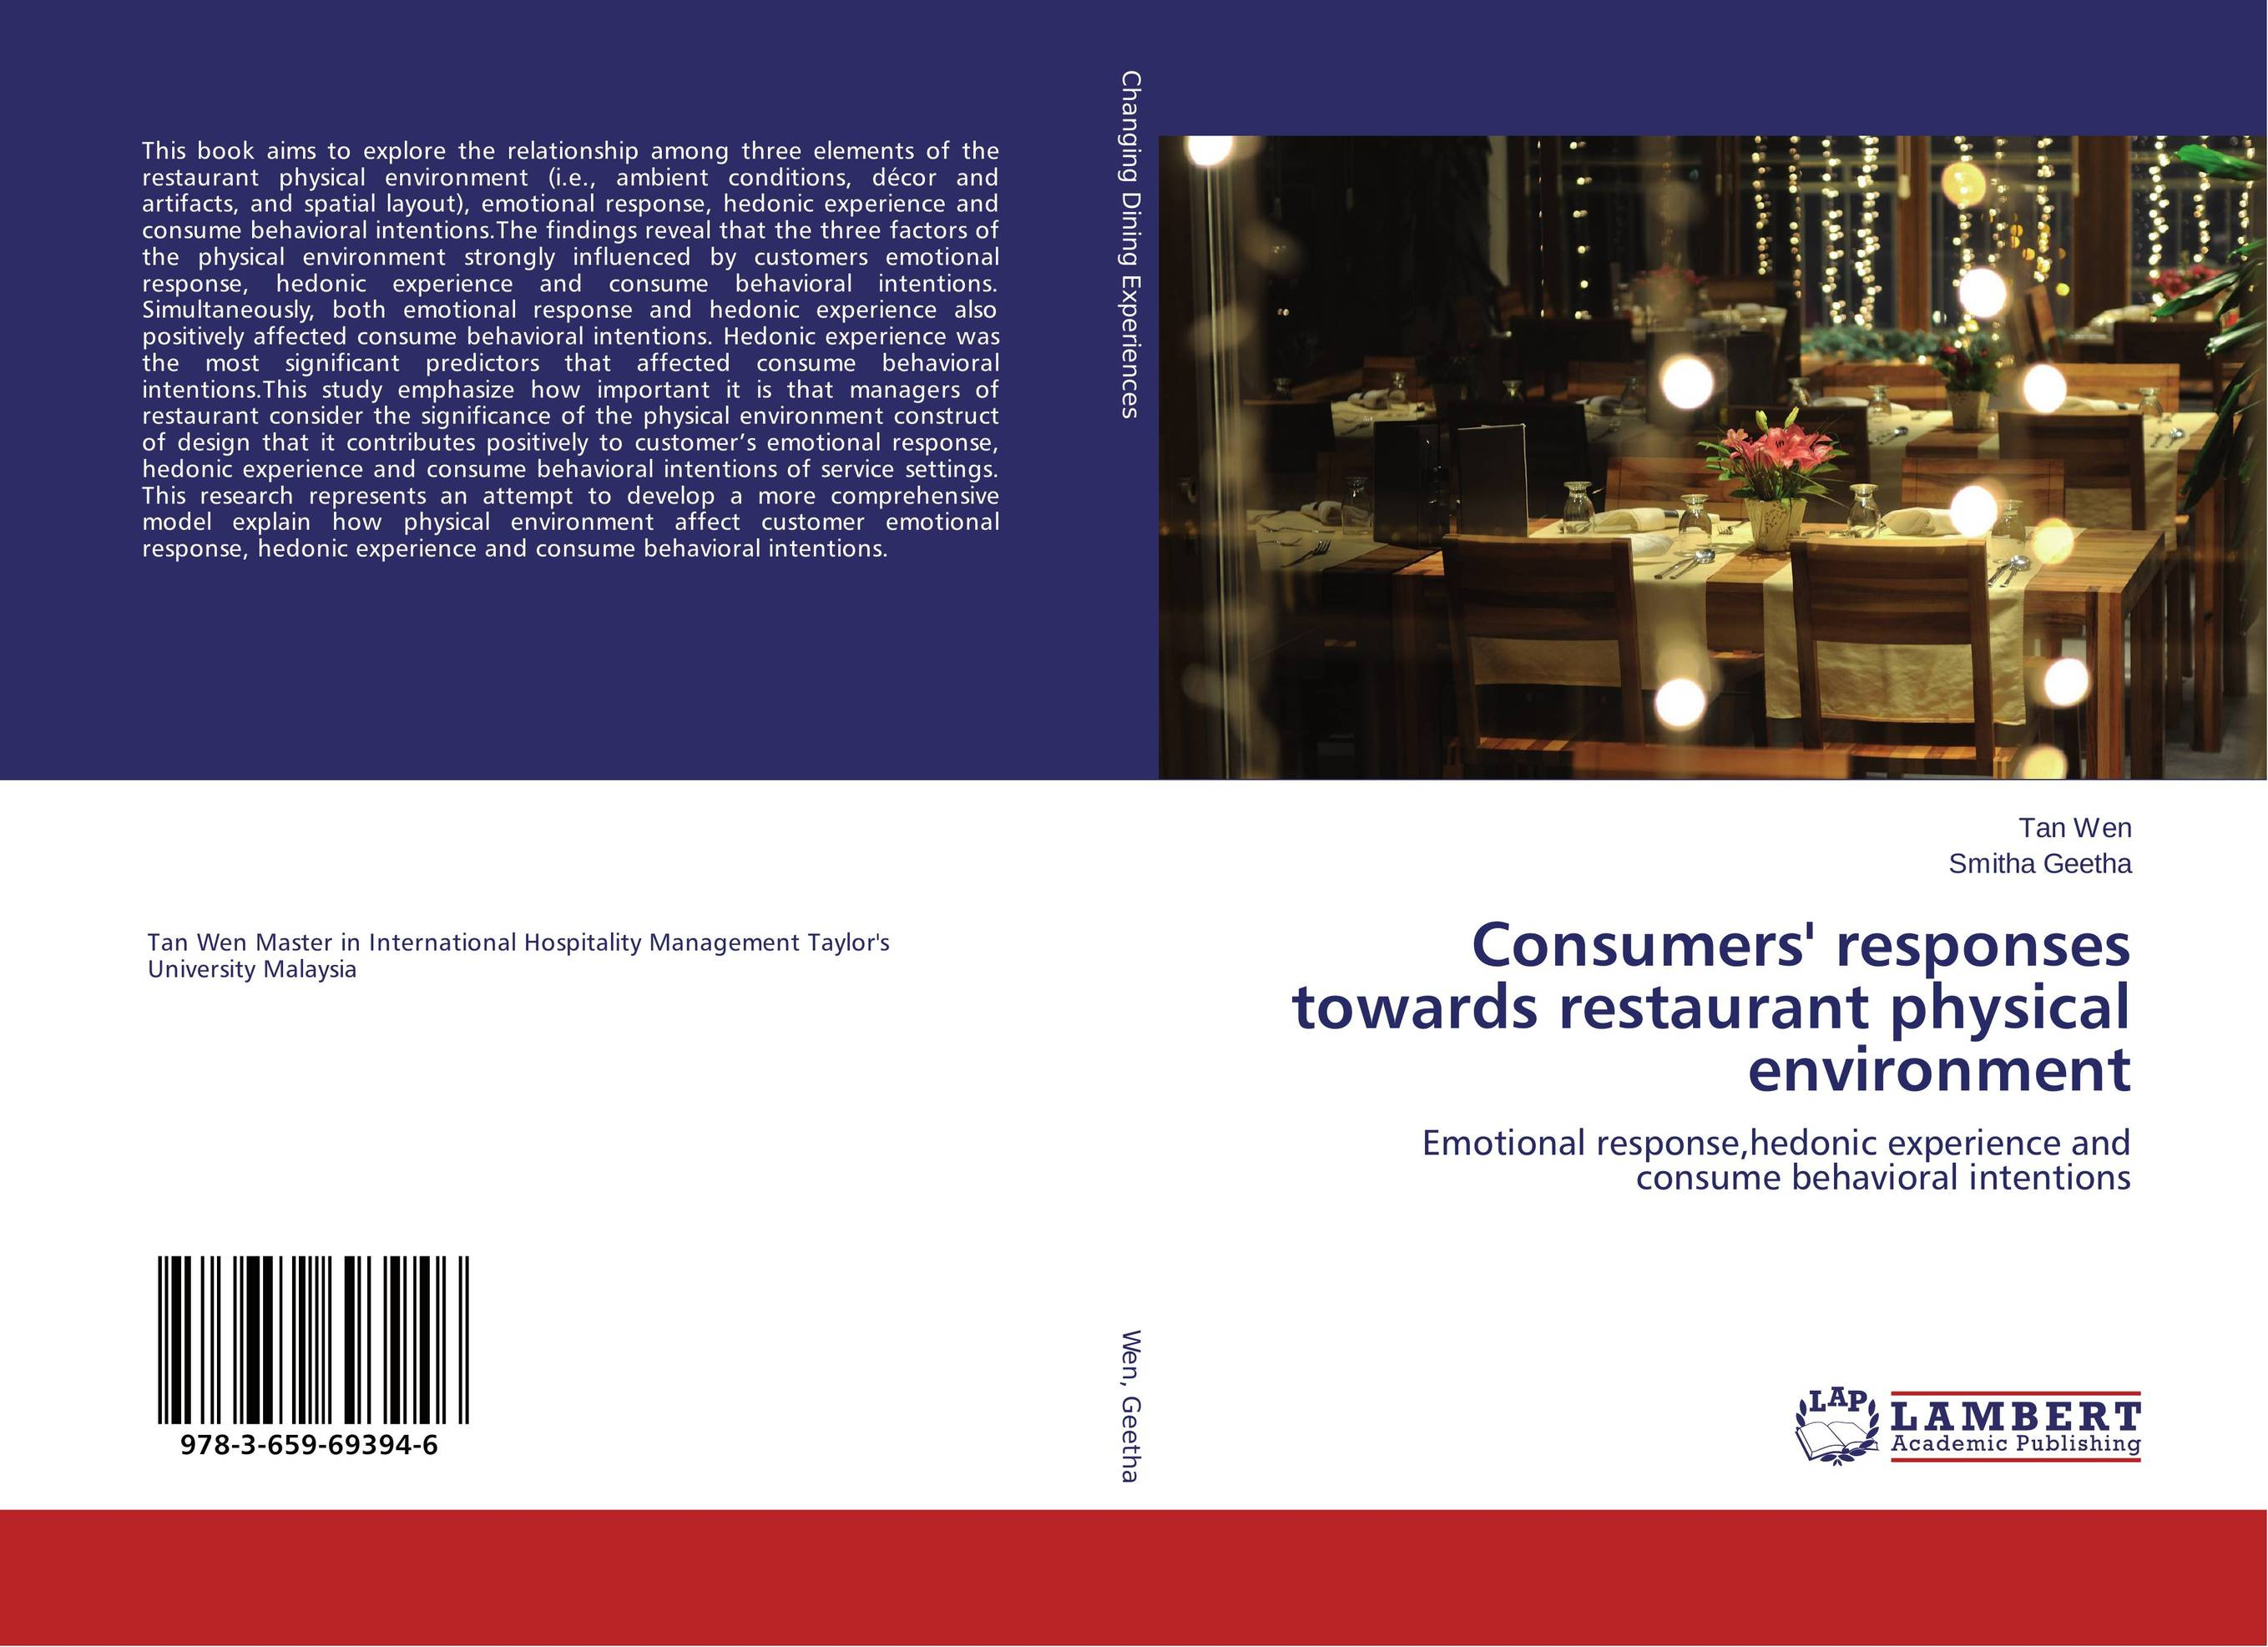 Consumers' responses towards restaurant physical environment